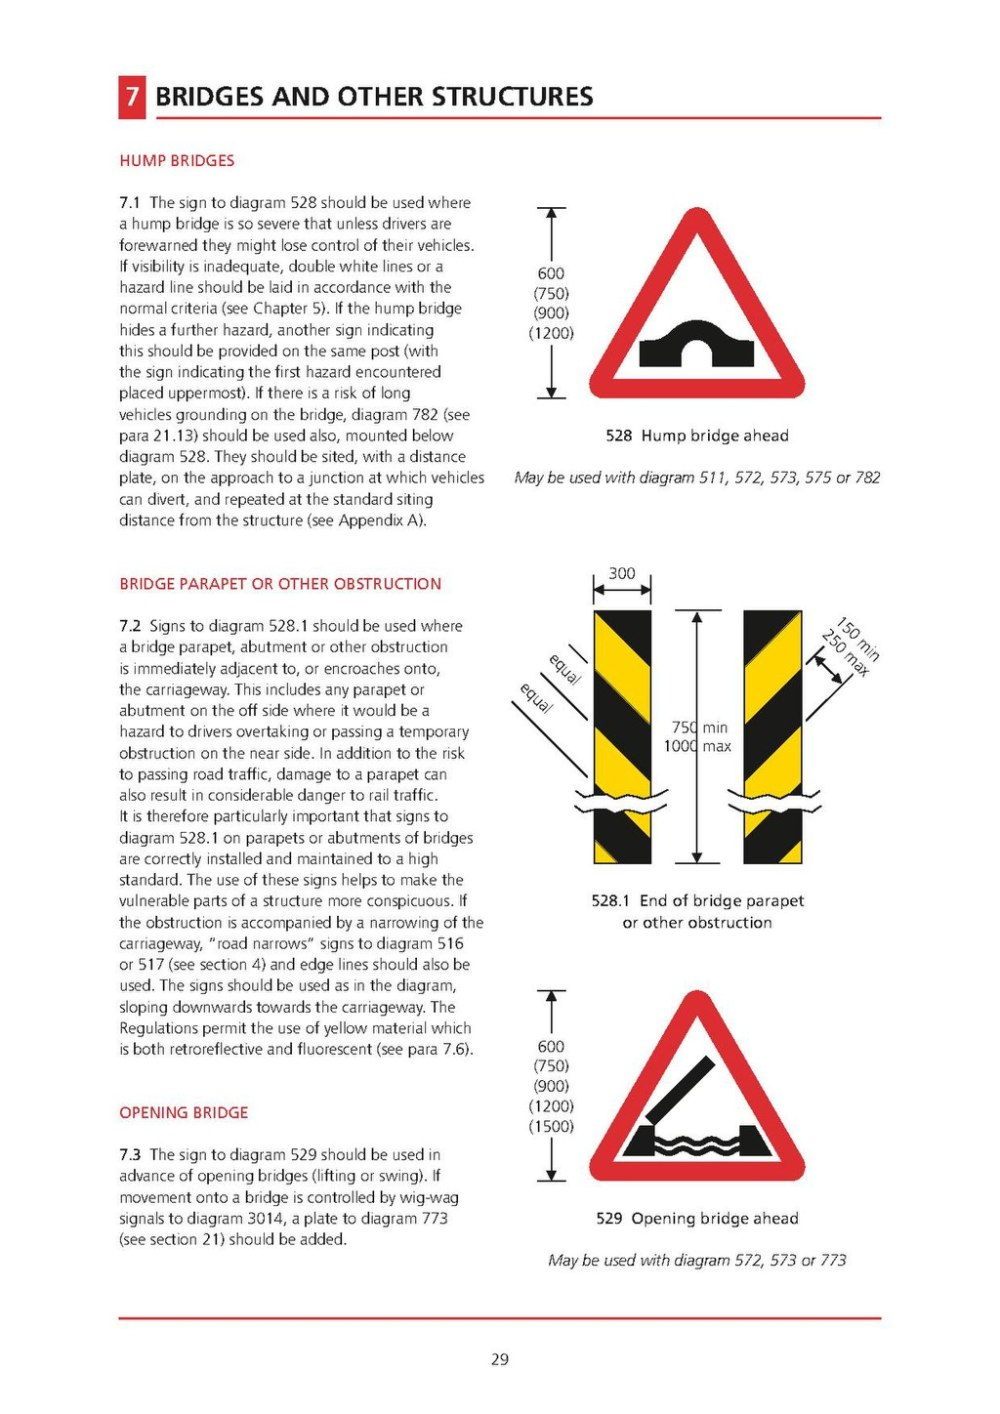 medium resolution of page uk traffic signs manual chapter 4 warning signs 2013 pdf 30 wikisource the free online library